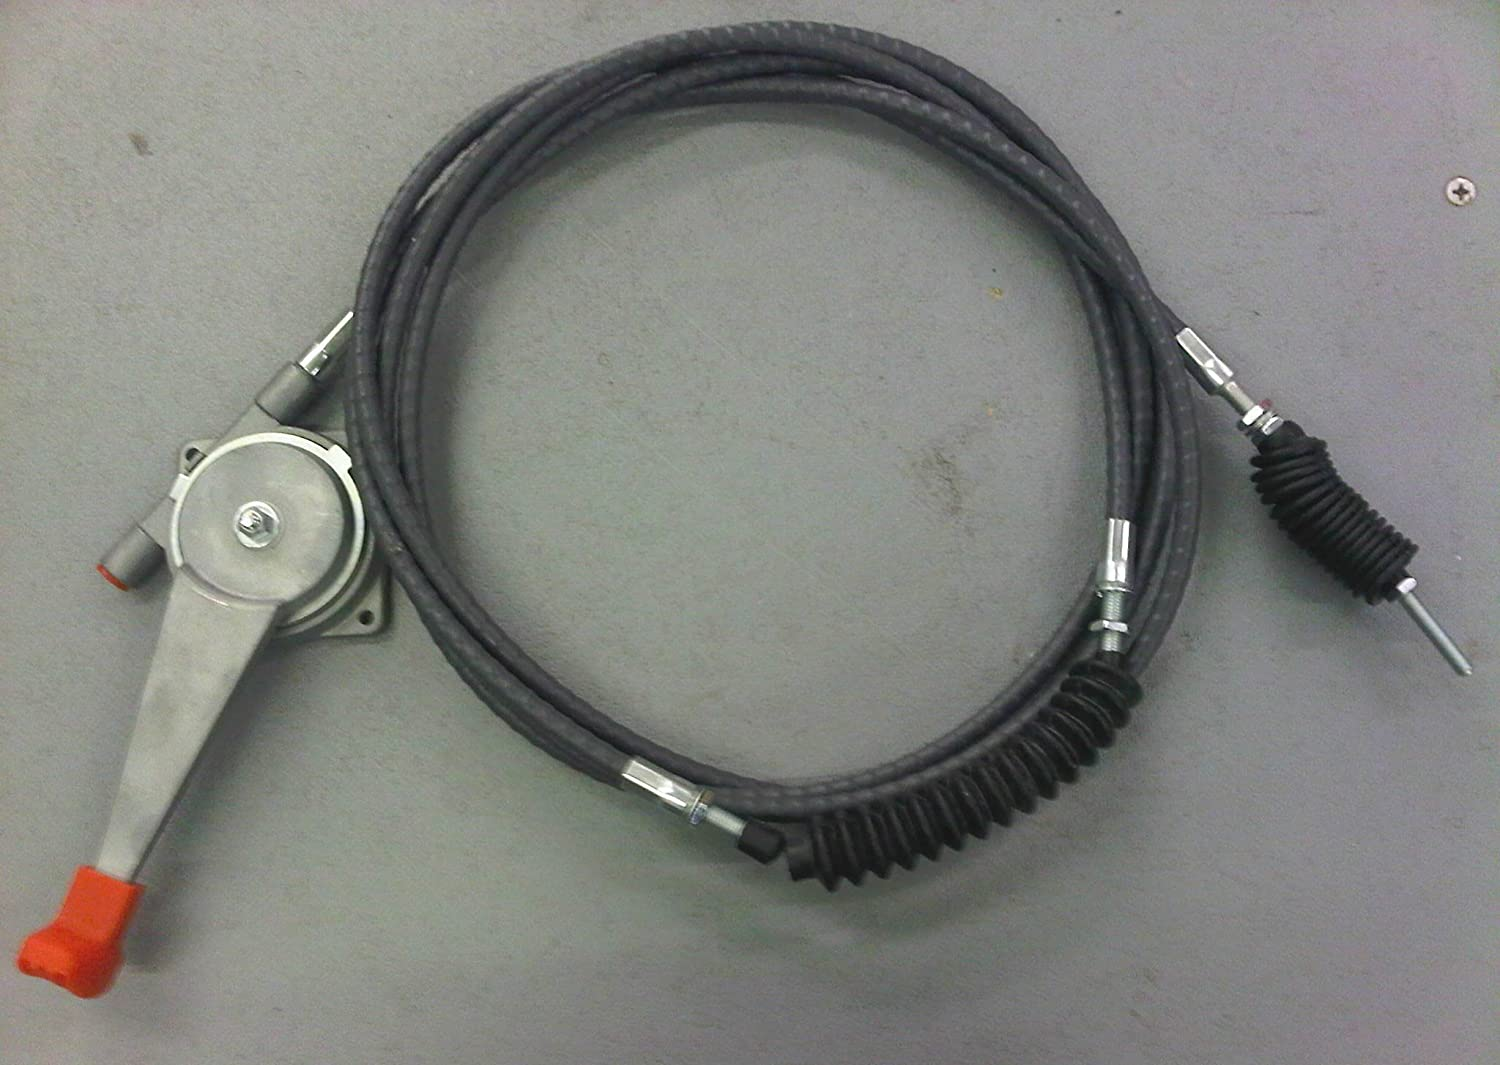 PART NO. 910//48800 JCB PARTS 3CX THROTTLE CABLE ASSY.